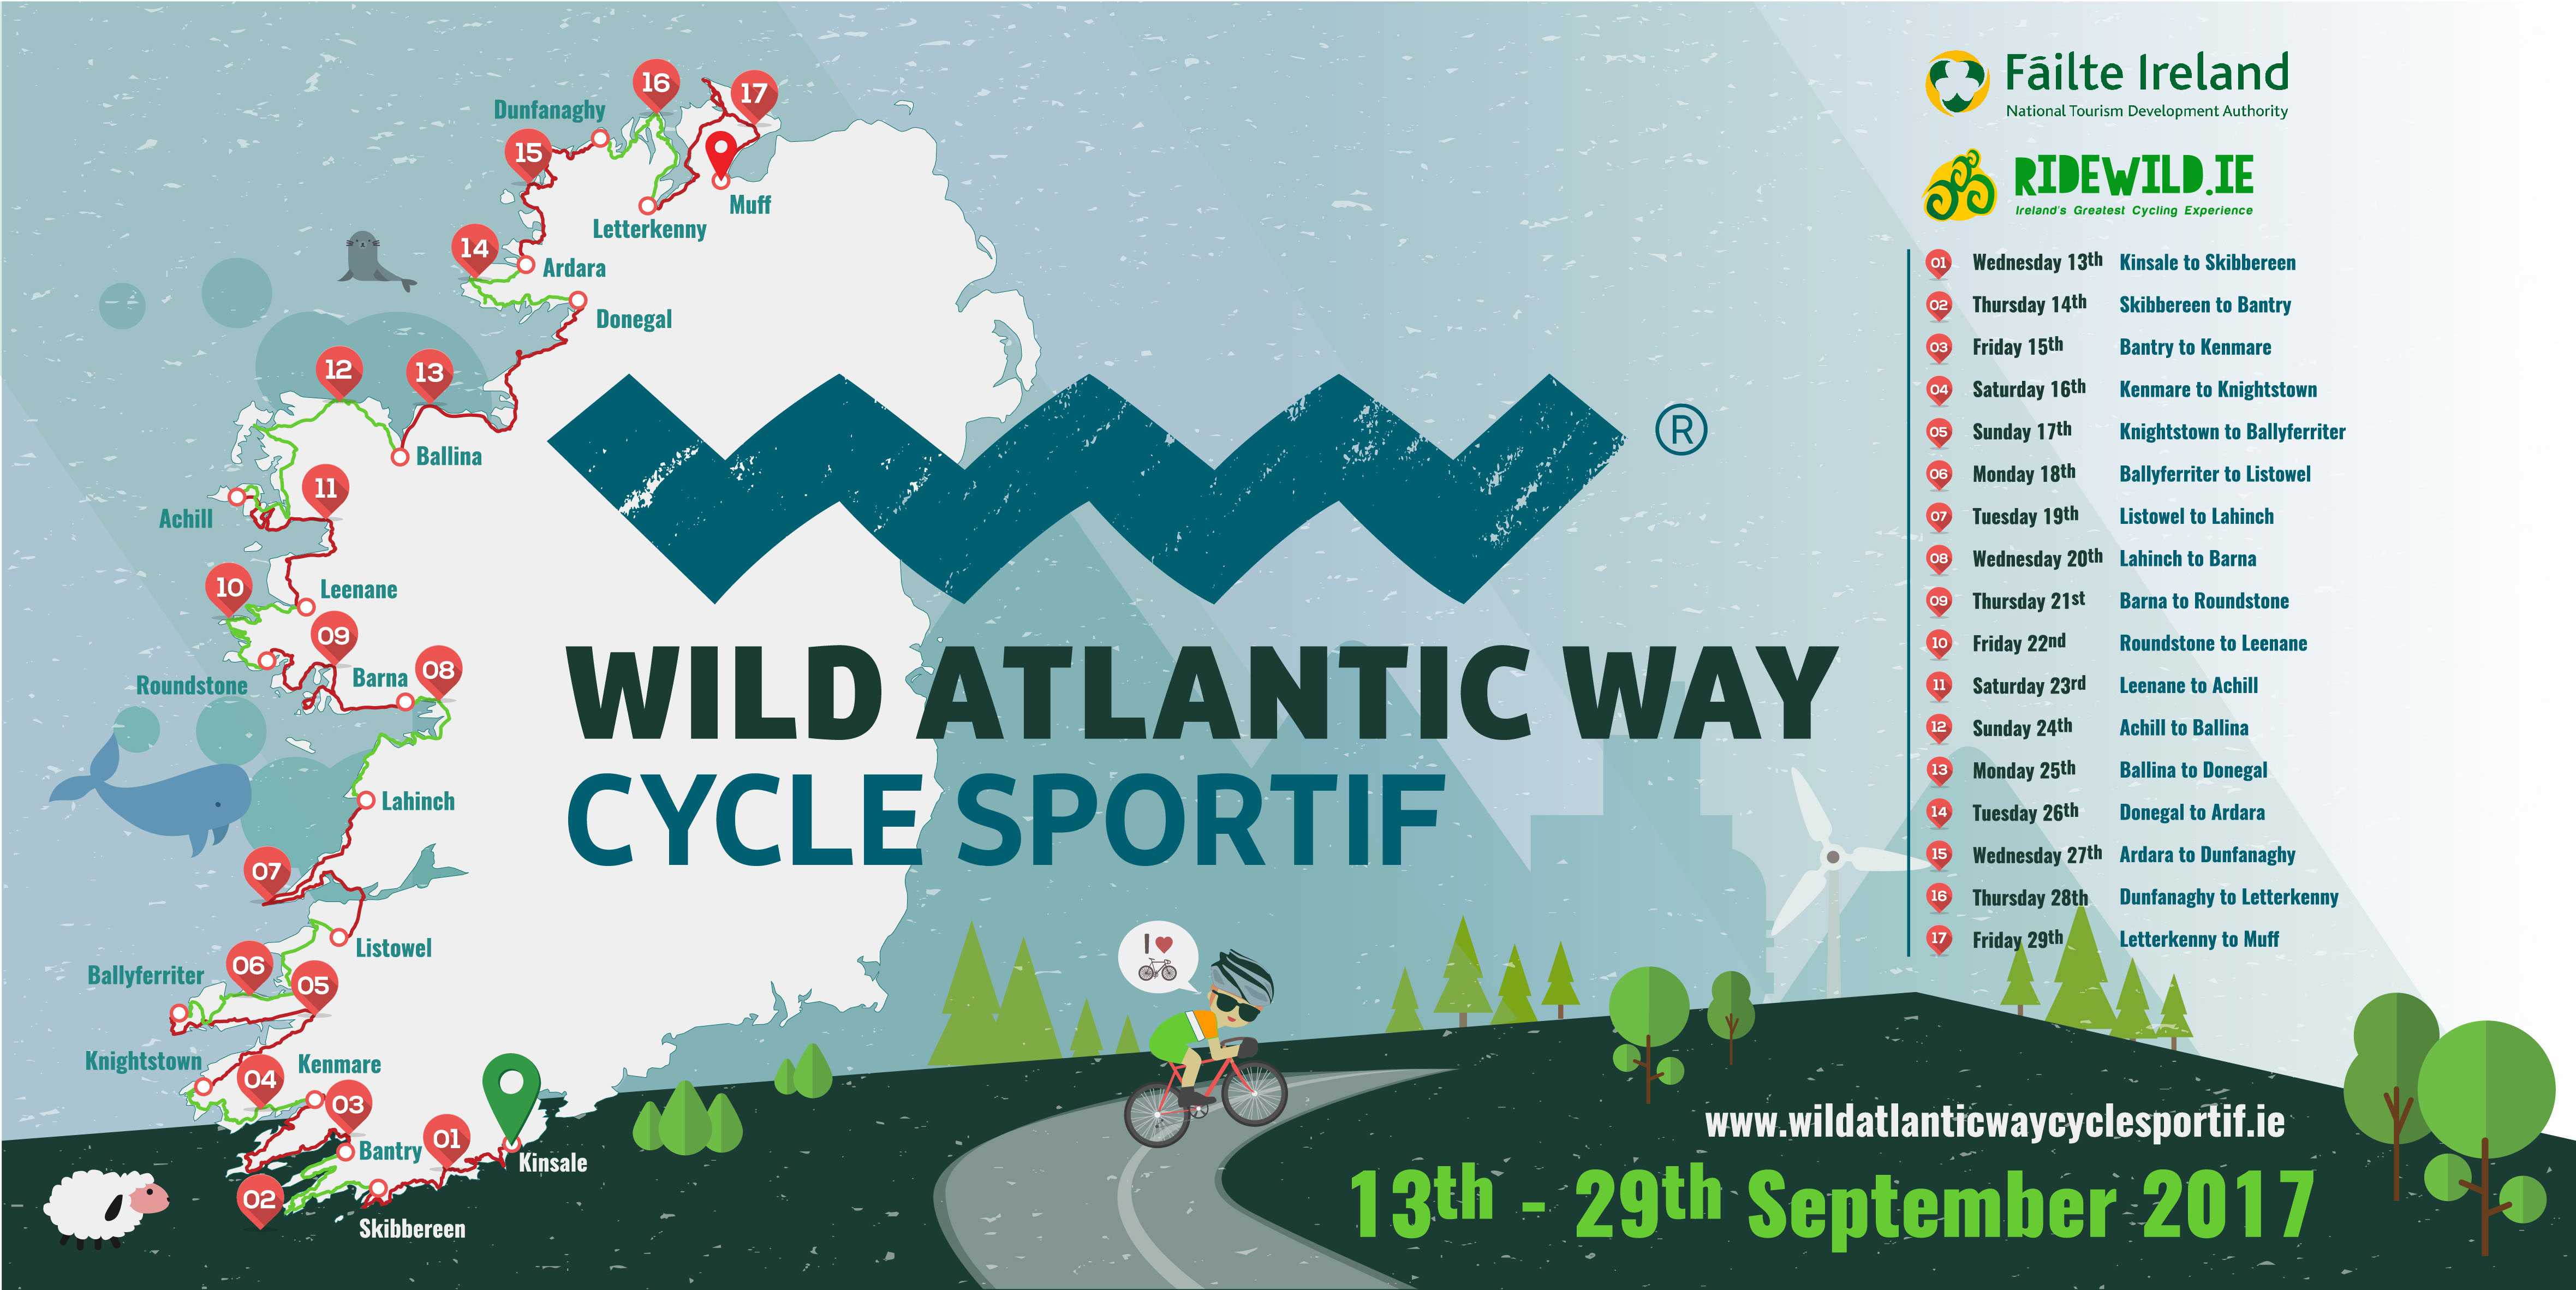 2017 Wild Atlantic Way Cycle Sportif Route Map – FFT.ie